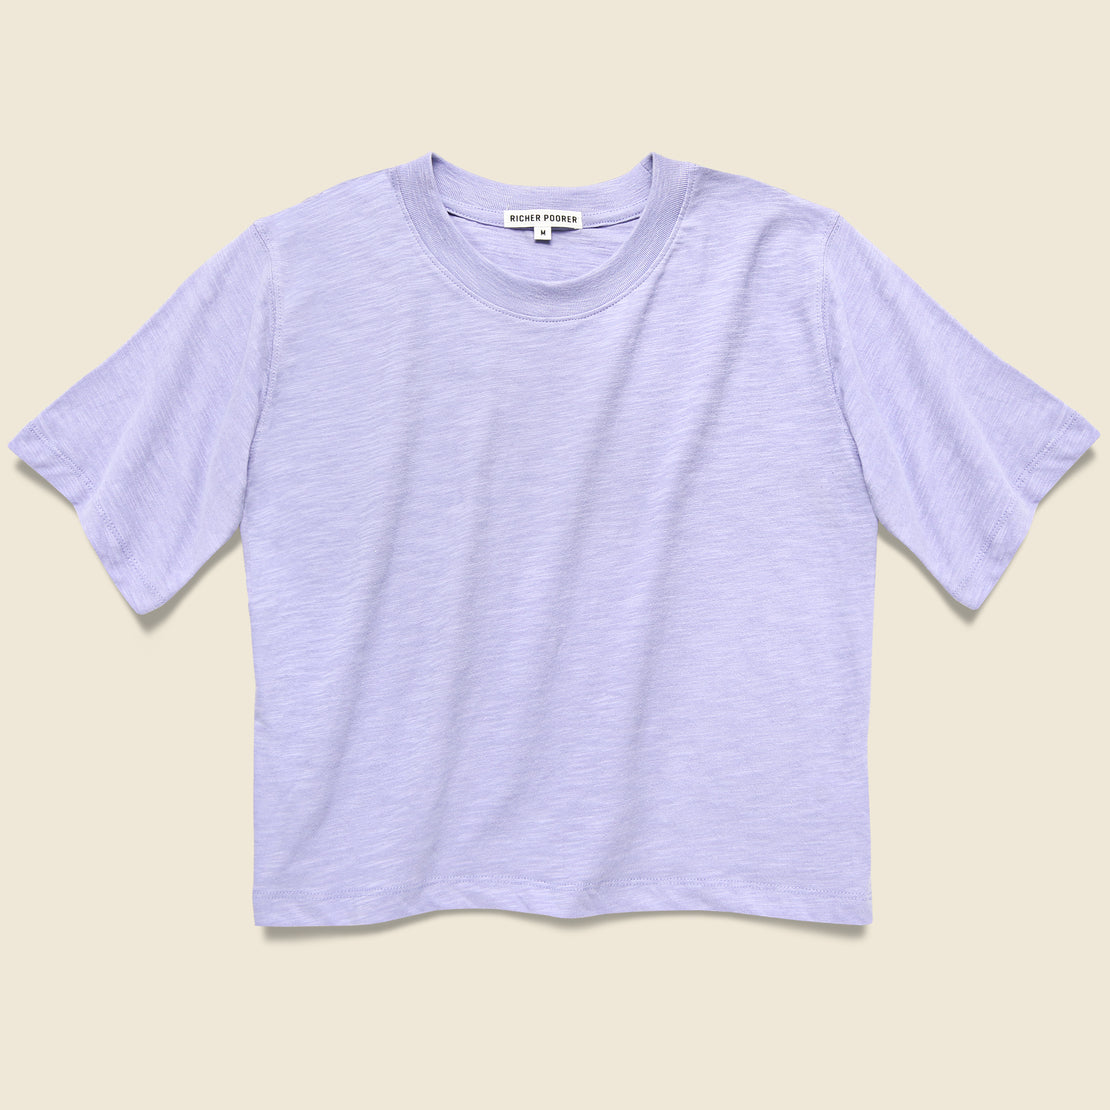 Richer Poorer Grown Up Crop Tee - Electric Violet